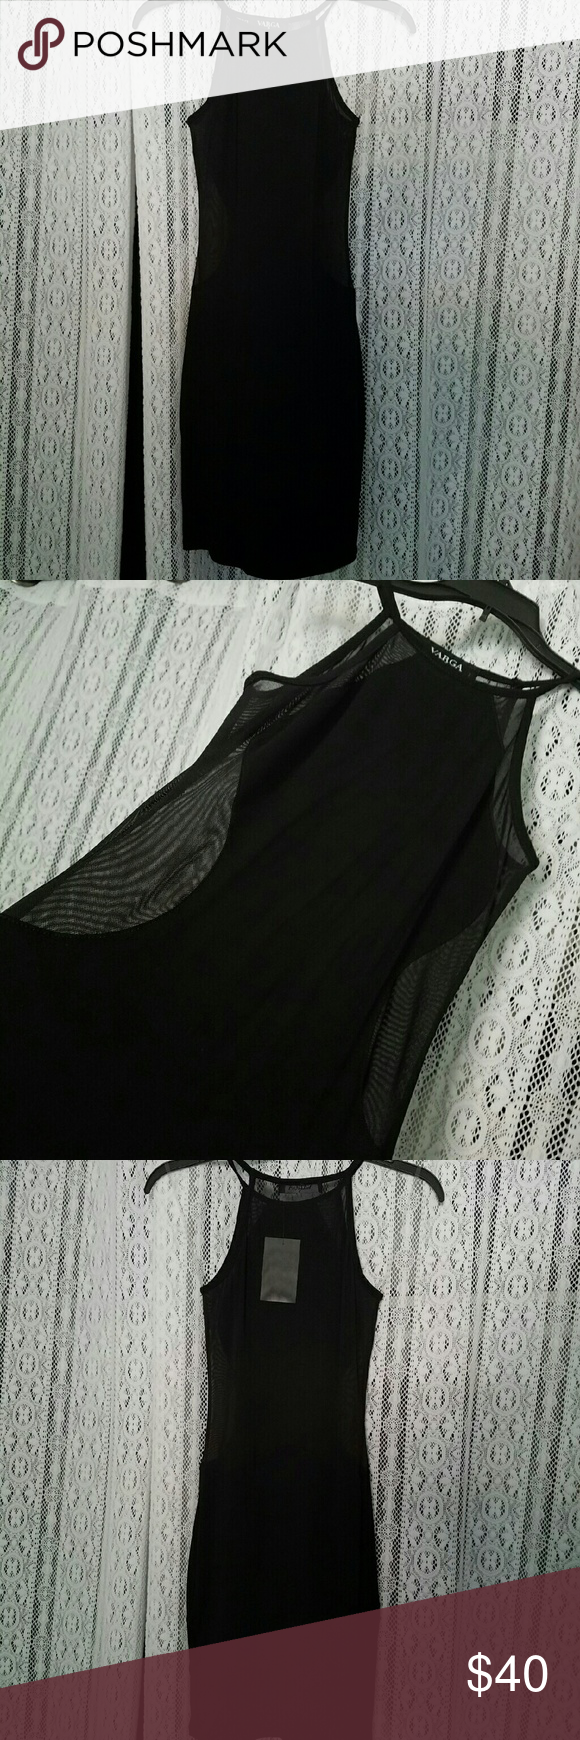 Nwt sexy black mesh dress nwt